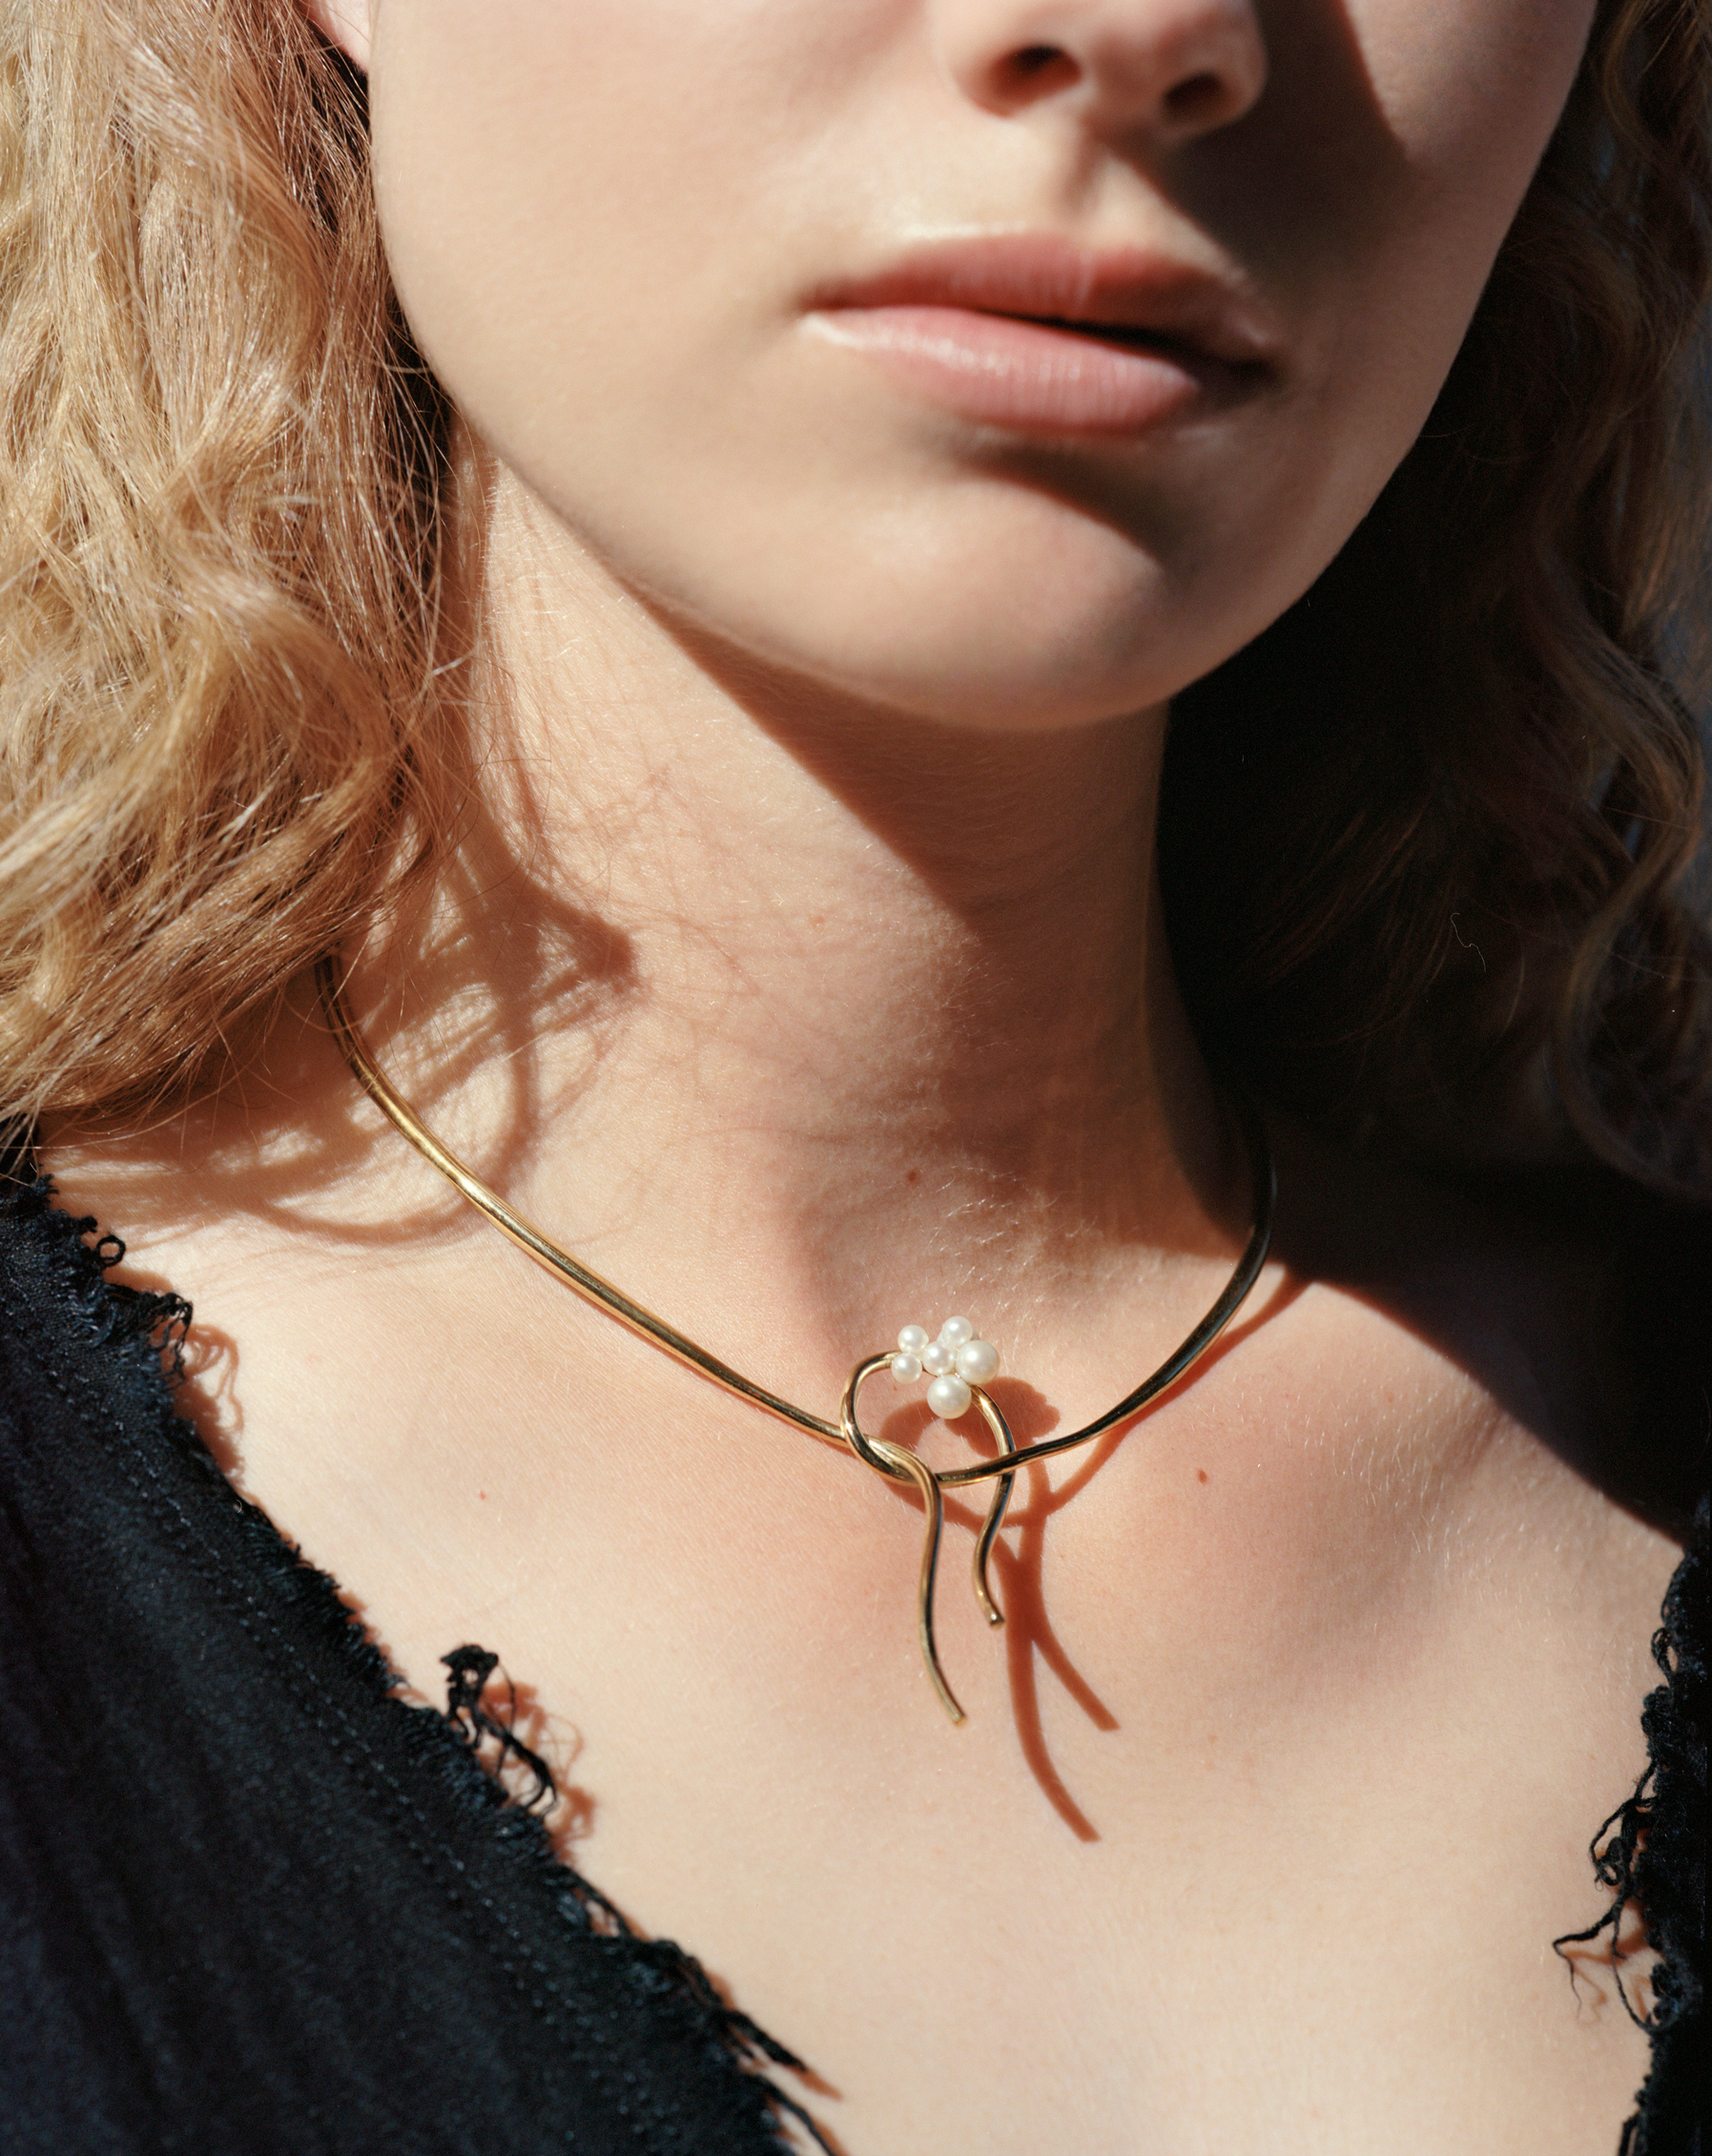 Waiting for the Miracle necklace - £450   More details